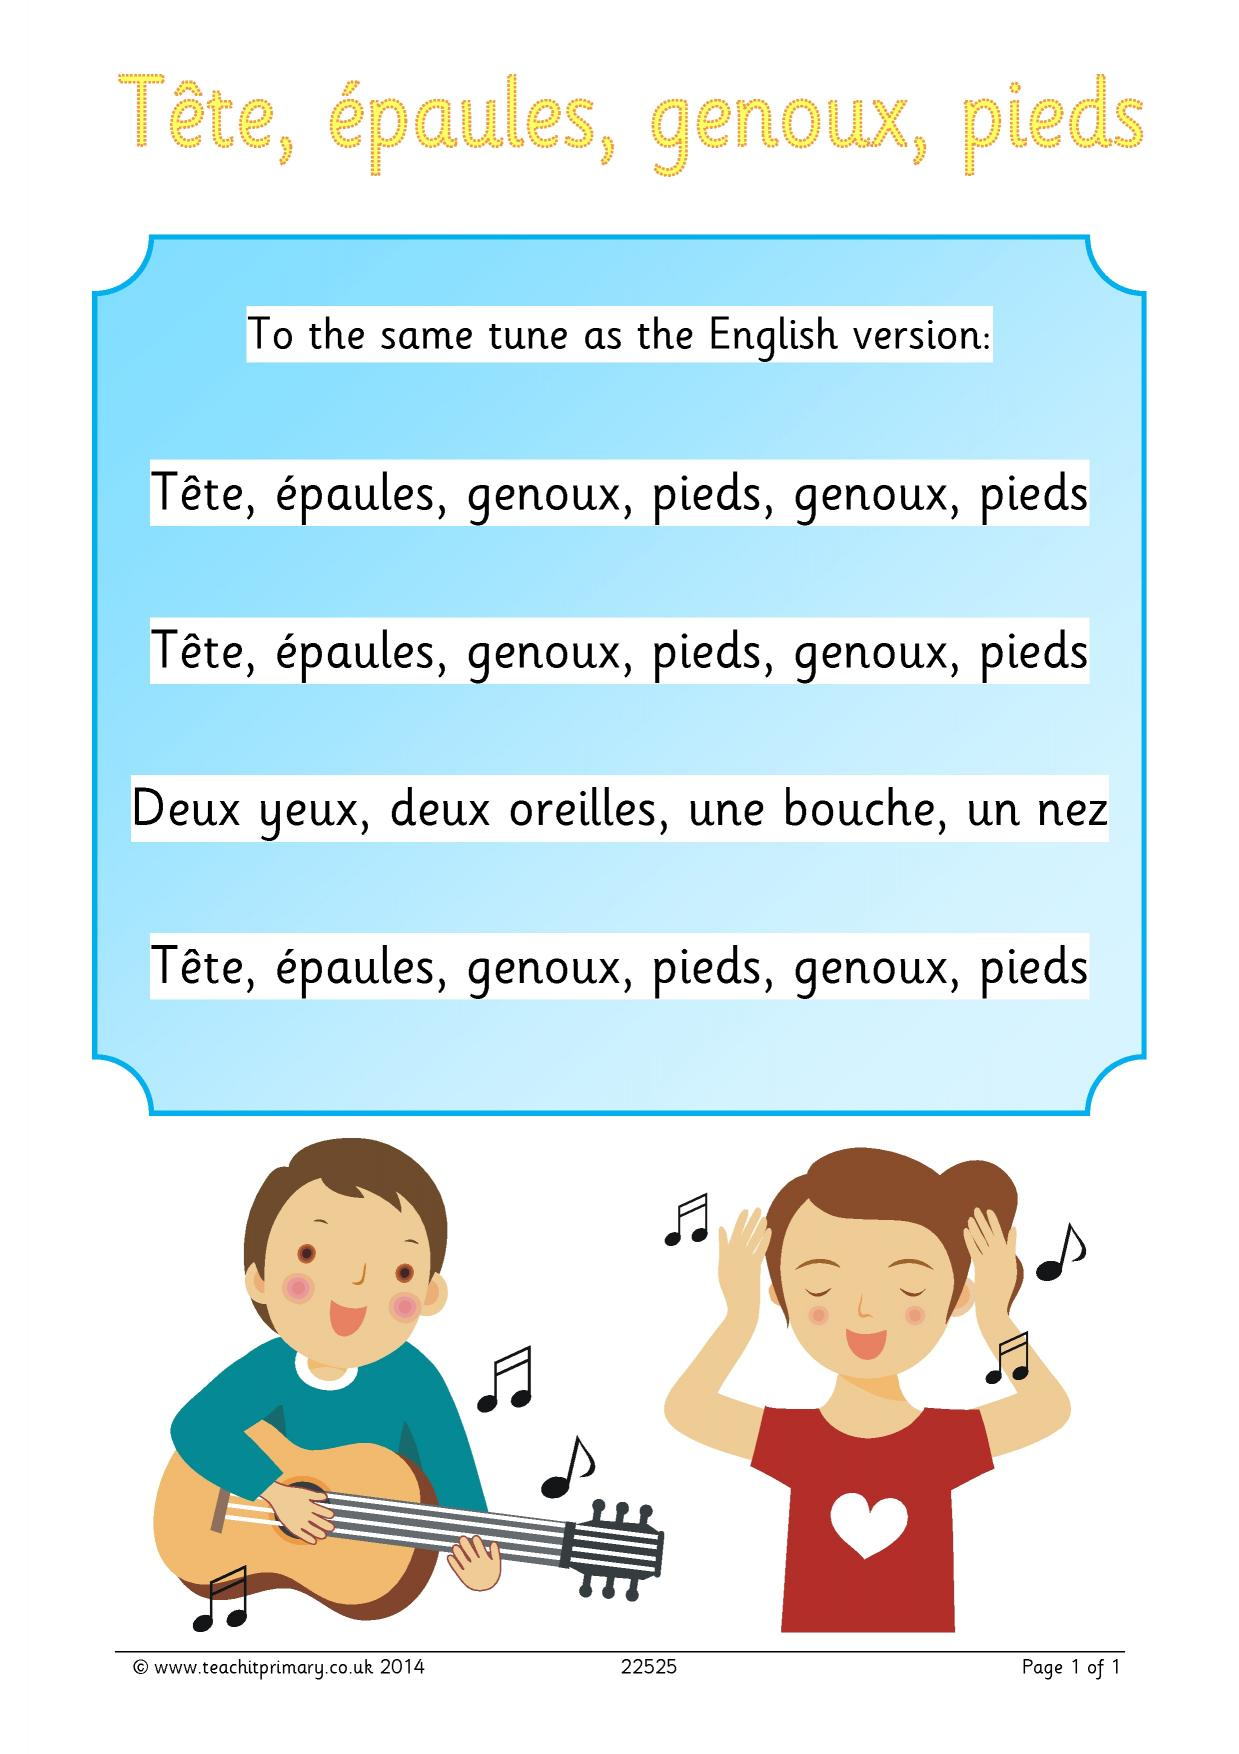 Languages teaching resources for Foundation, KS1 and KS2 - Teachit ...